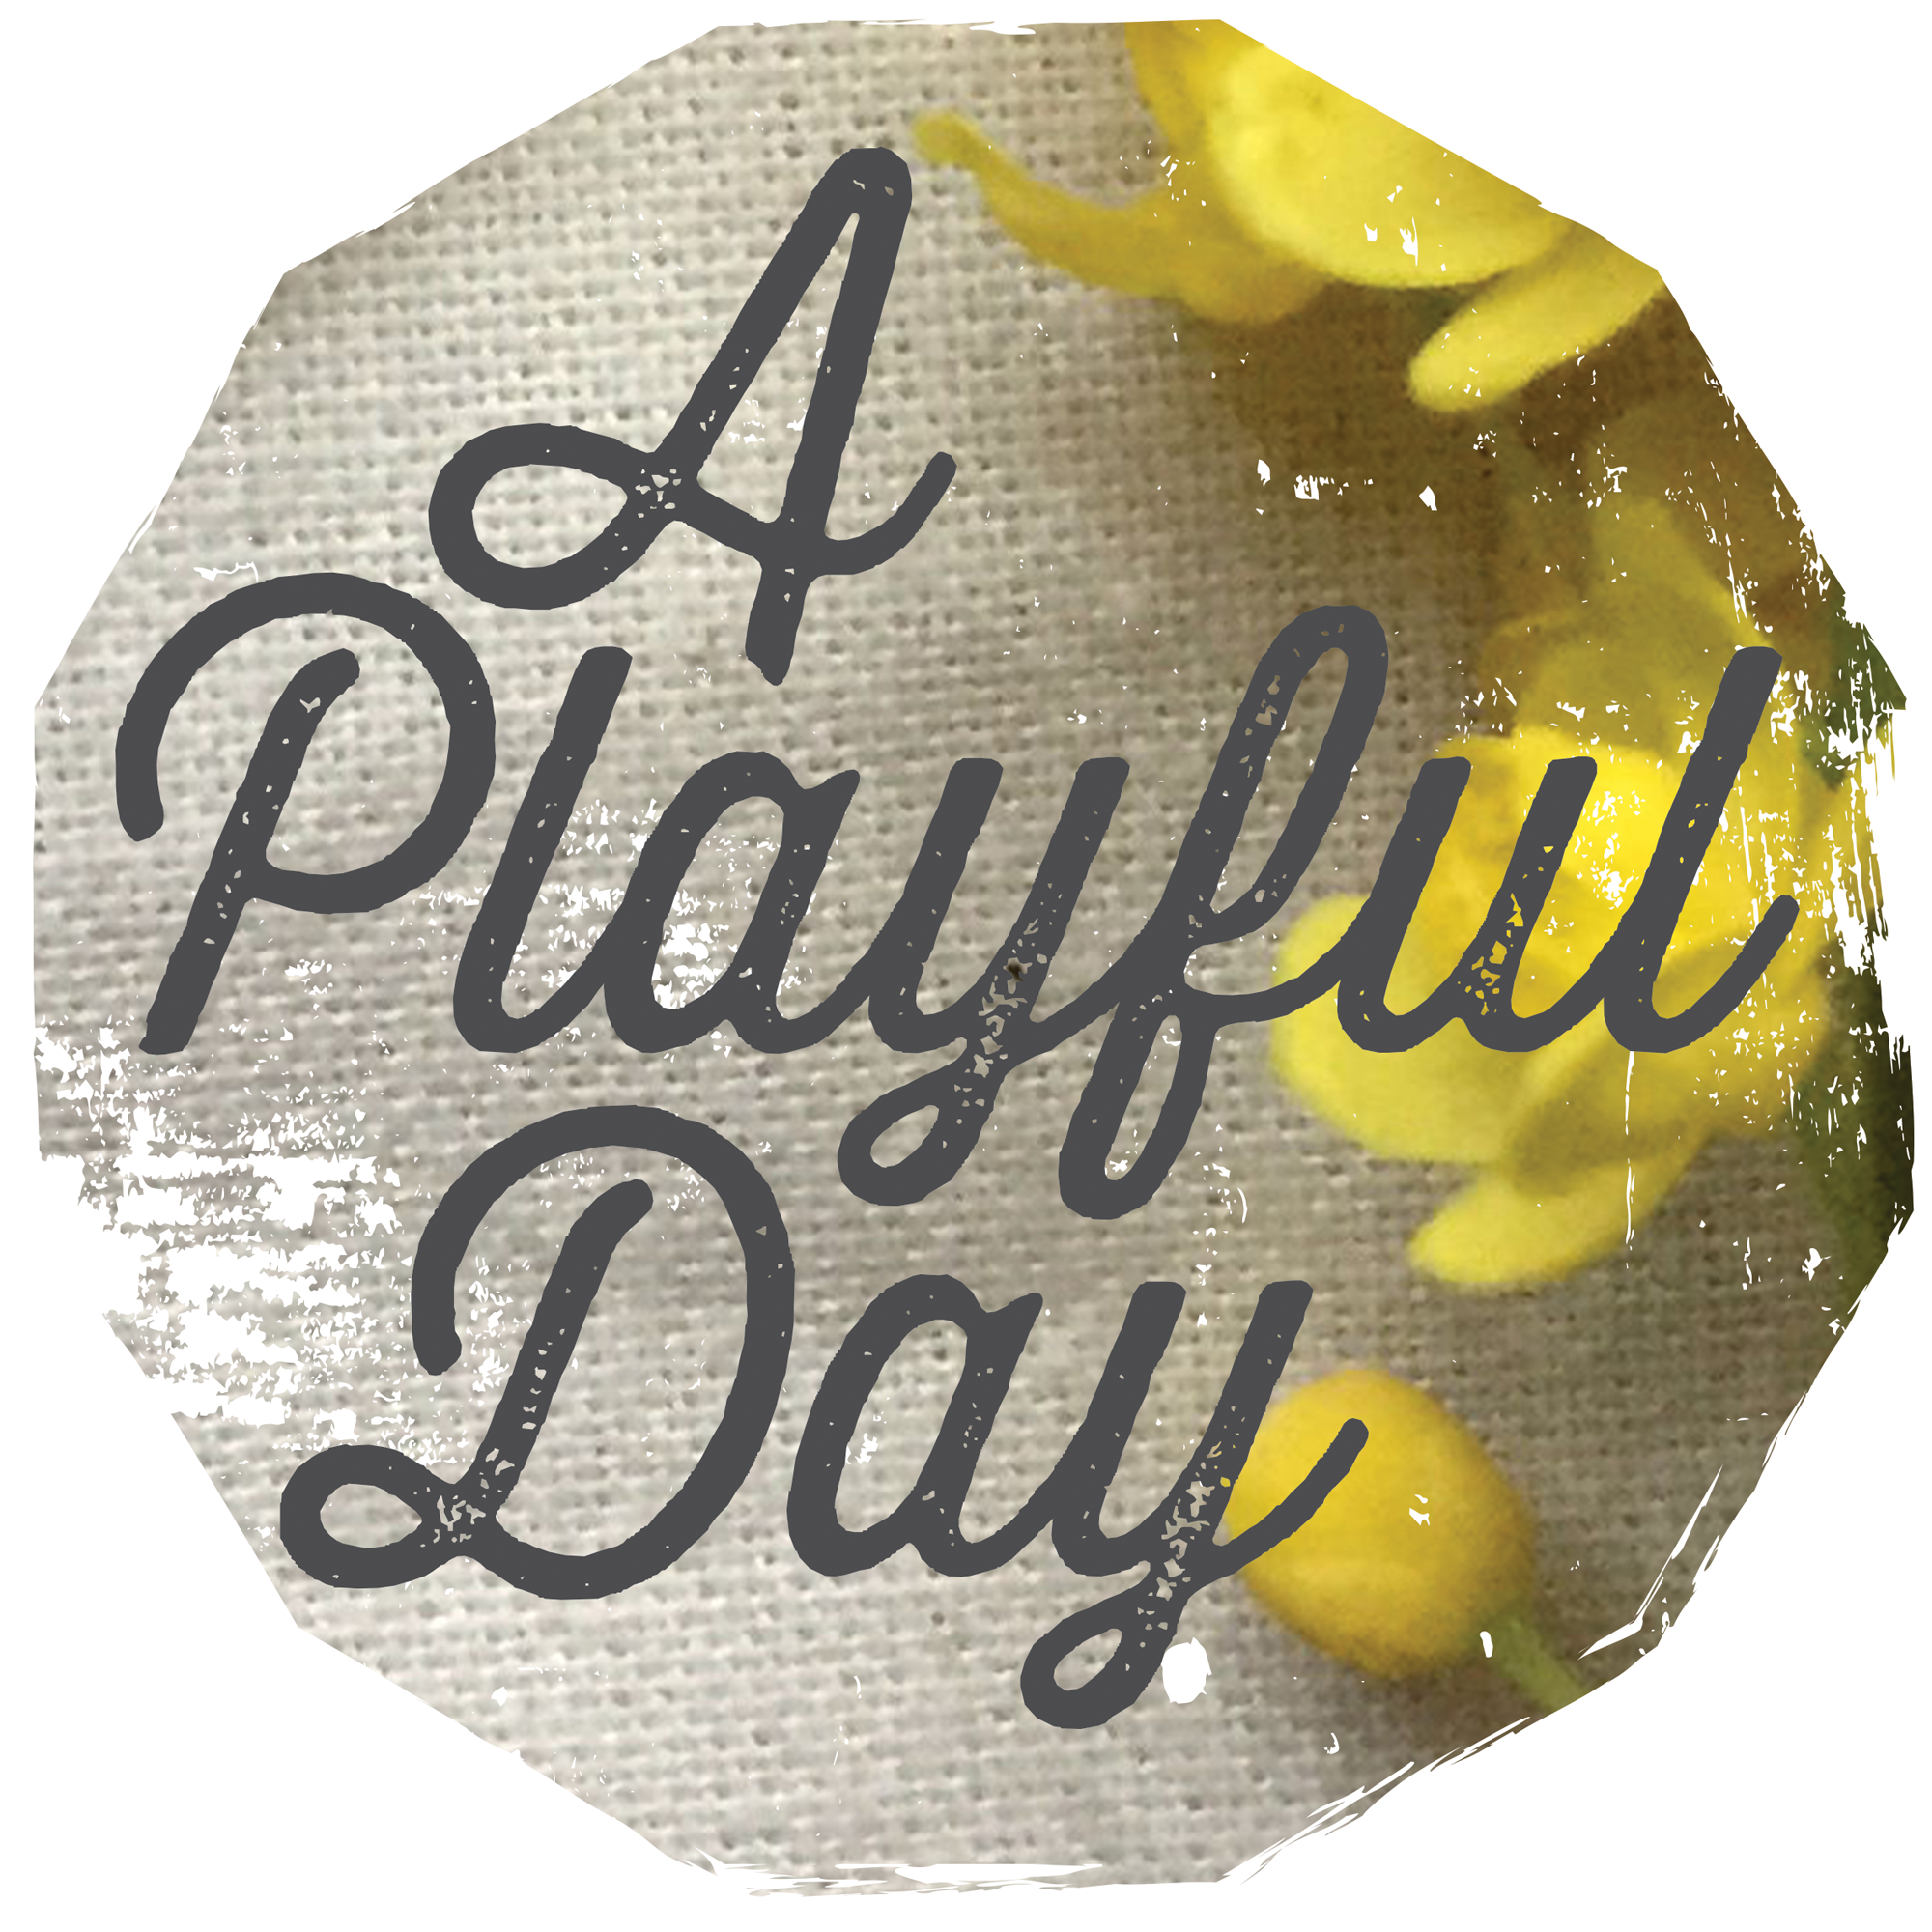 The A Playful Day Podcast Says Farewell    & Hello A Playful Day podcast